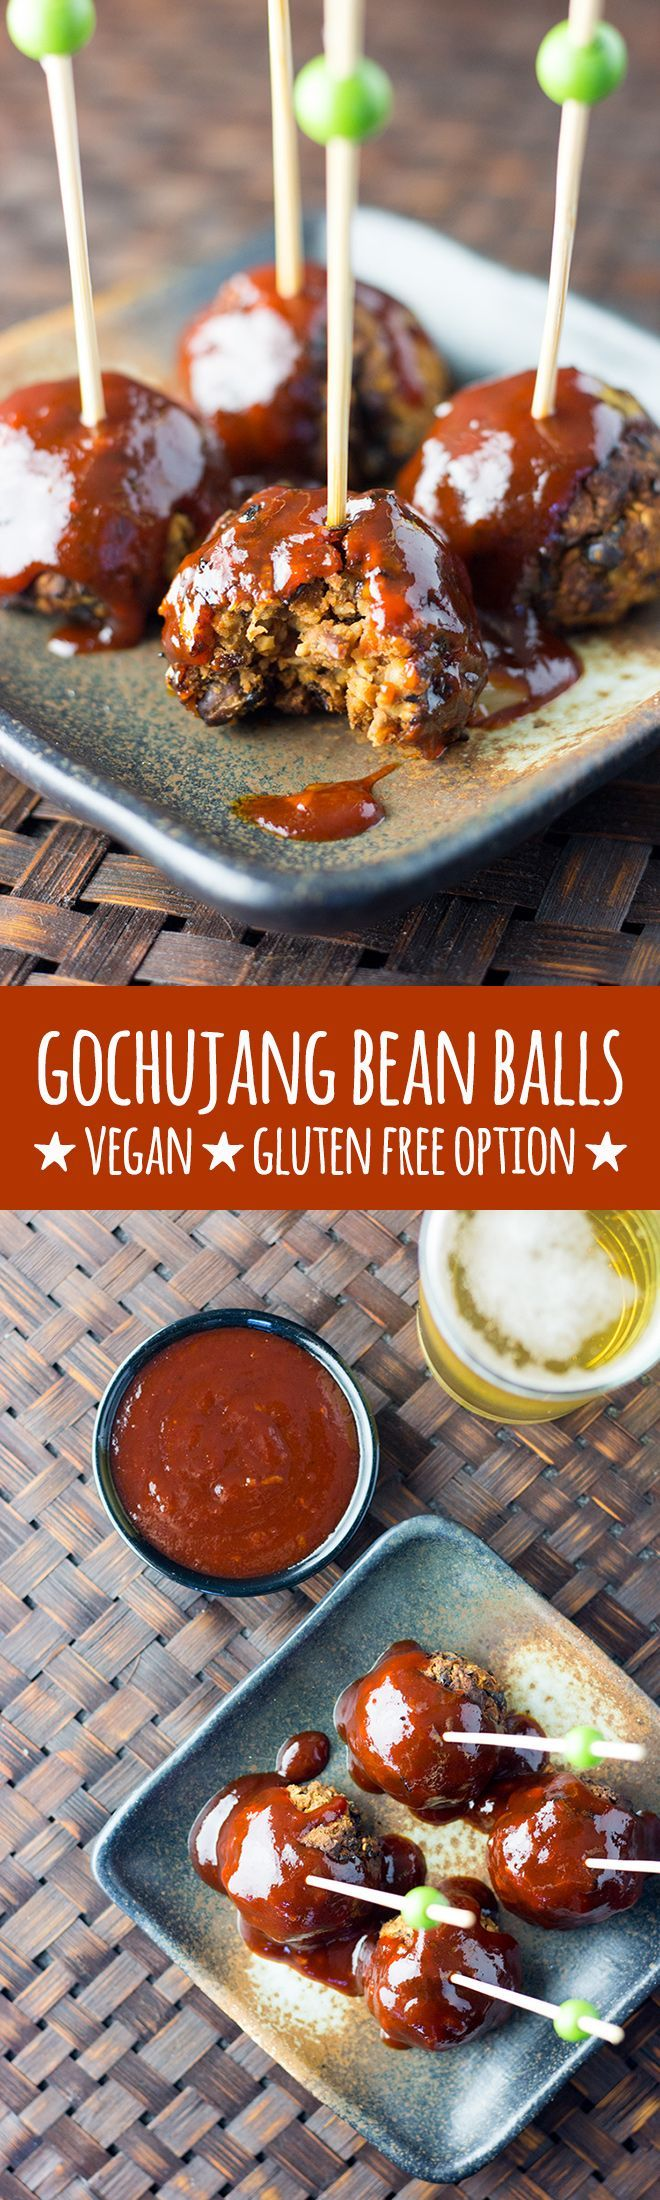 Gochujang is the star of the show in this Korean style take on vegan meat balls…